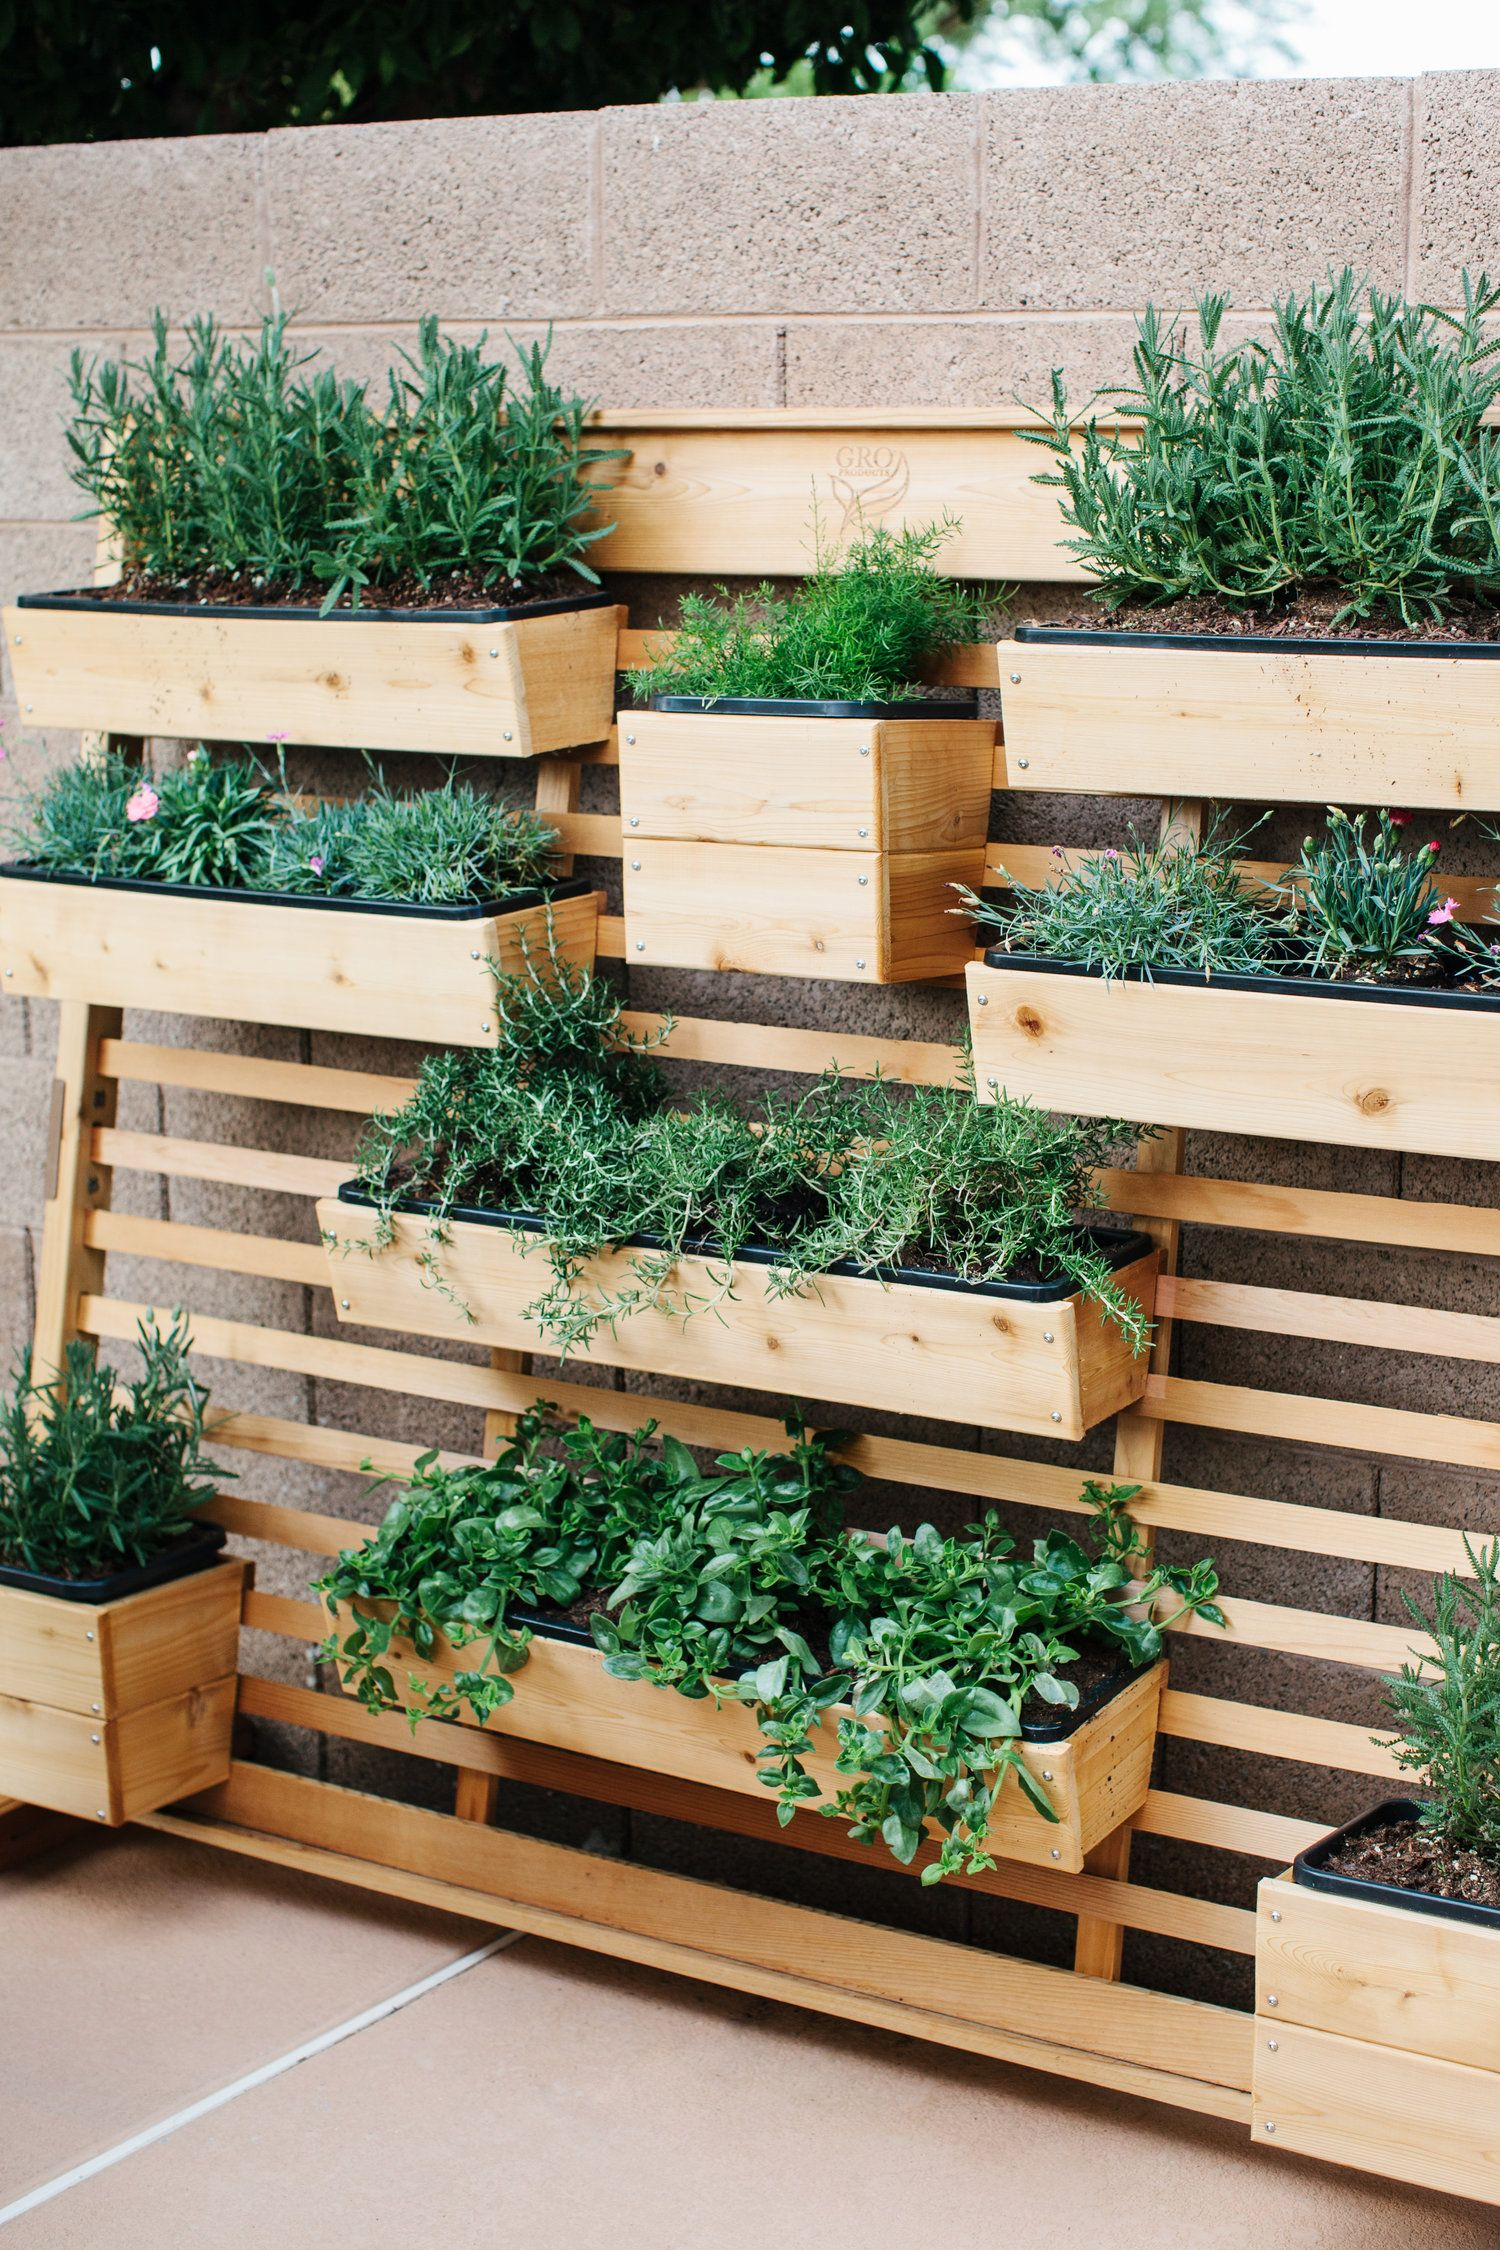 Arizona outdoor entertaining living walls cinder block Herb garden wall ideas